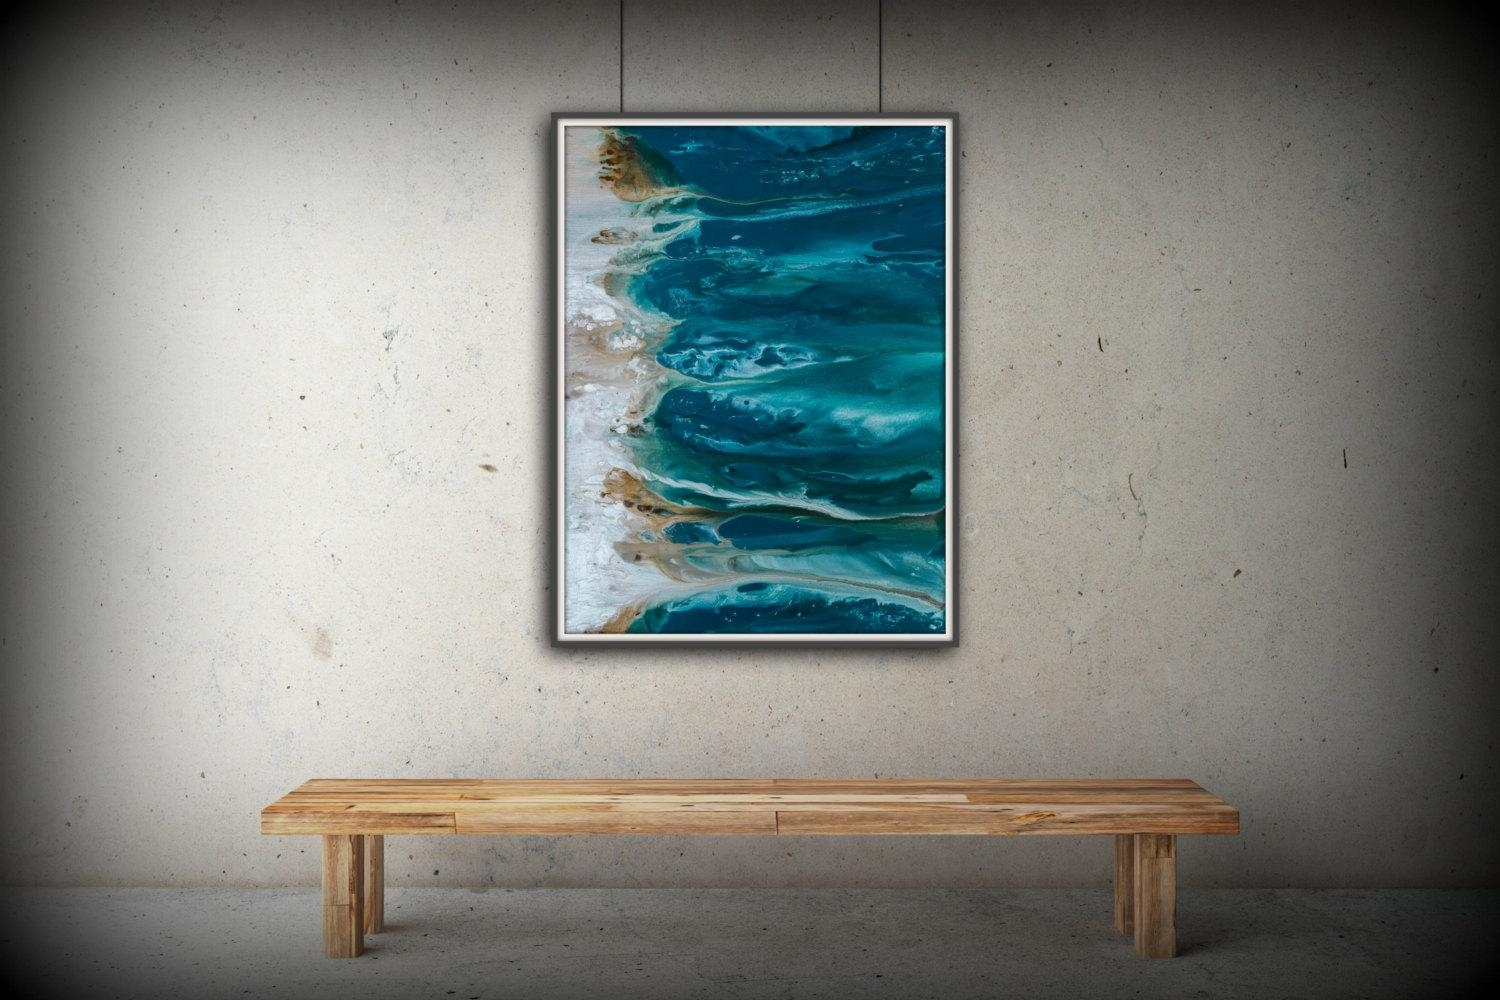 Abstract Art Blue Wall Art Coastal Landscape Giclee Large For Coastal Wall Art Canvas (Image 1 of 20)